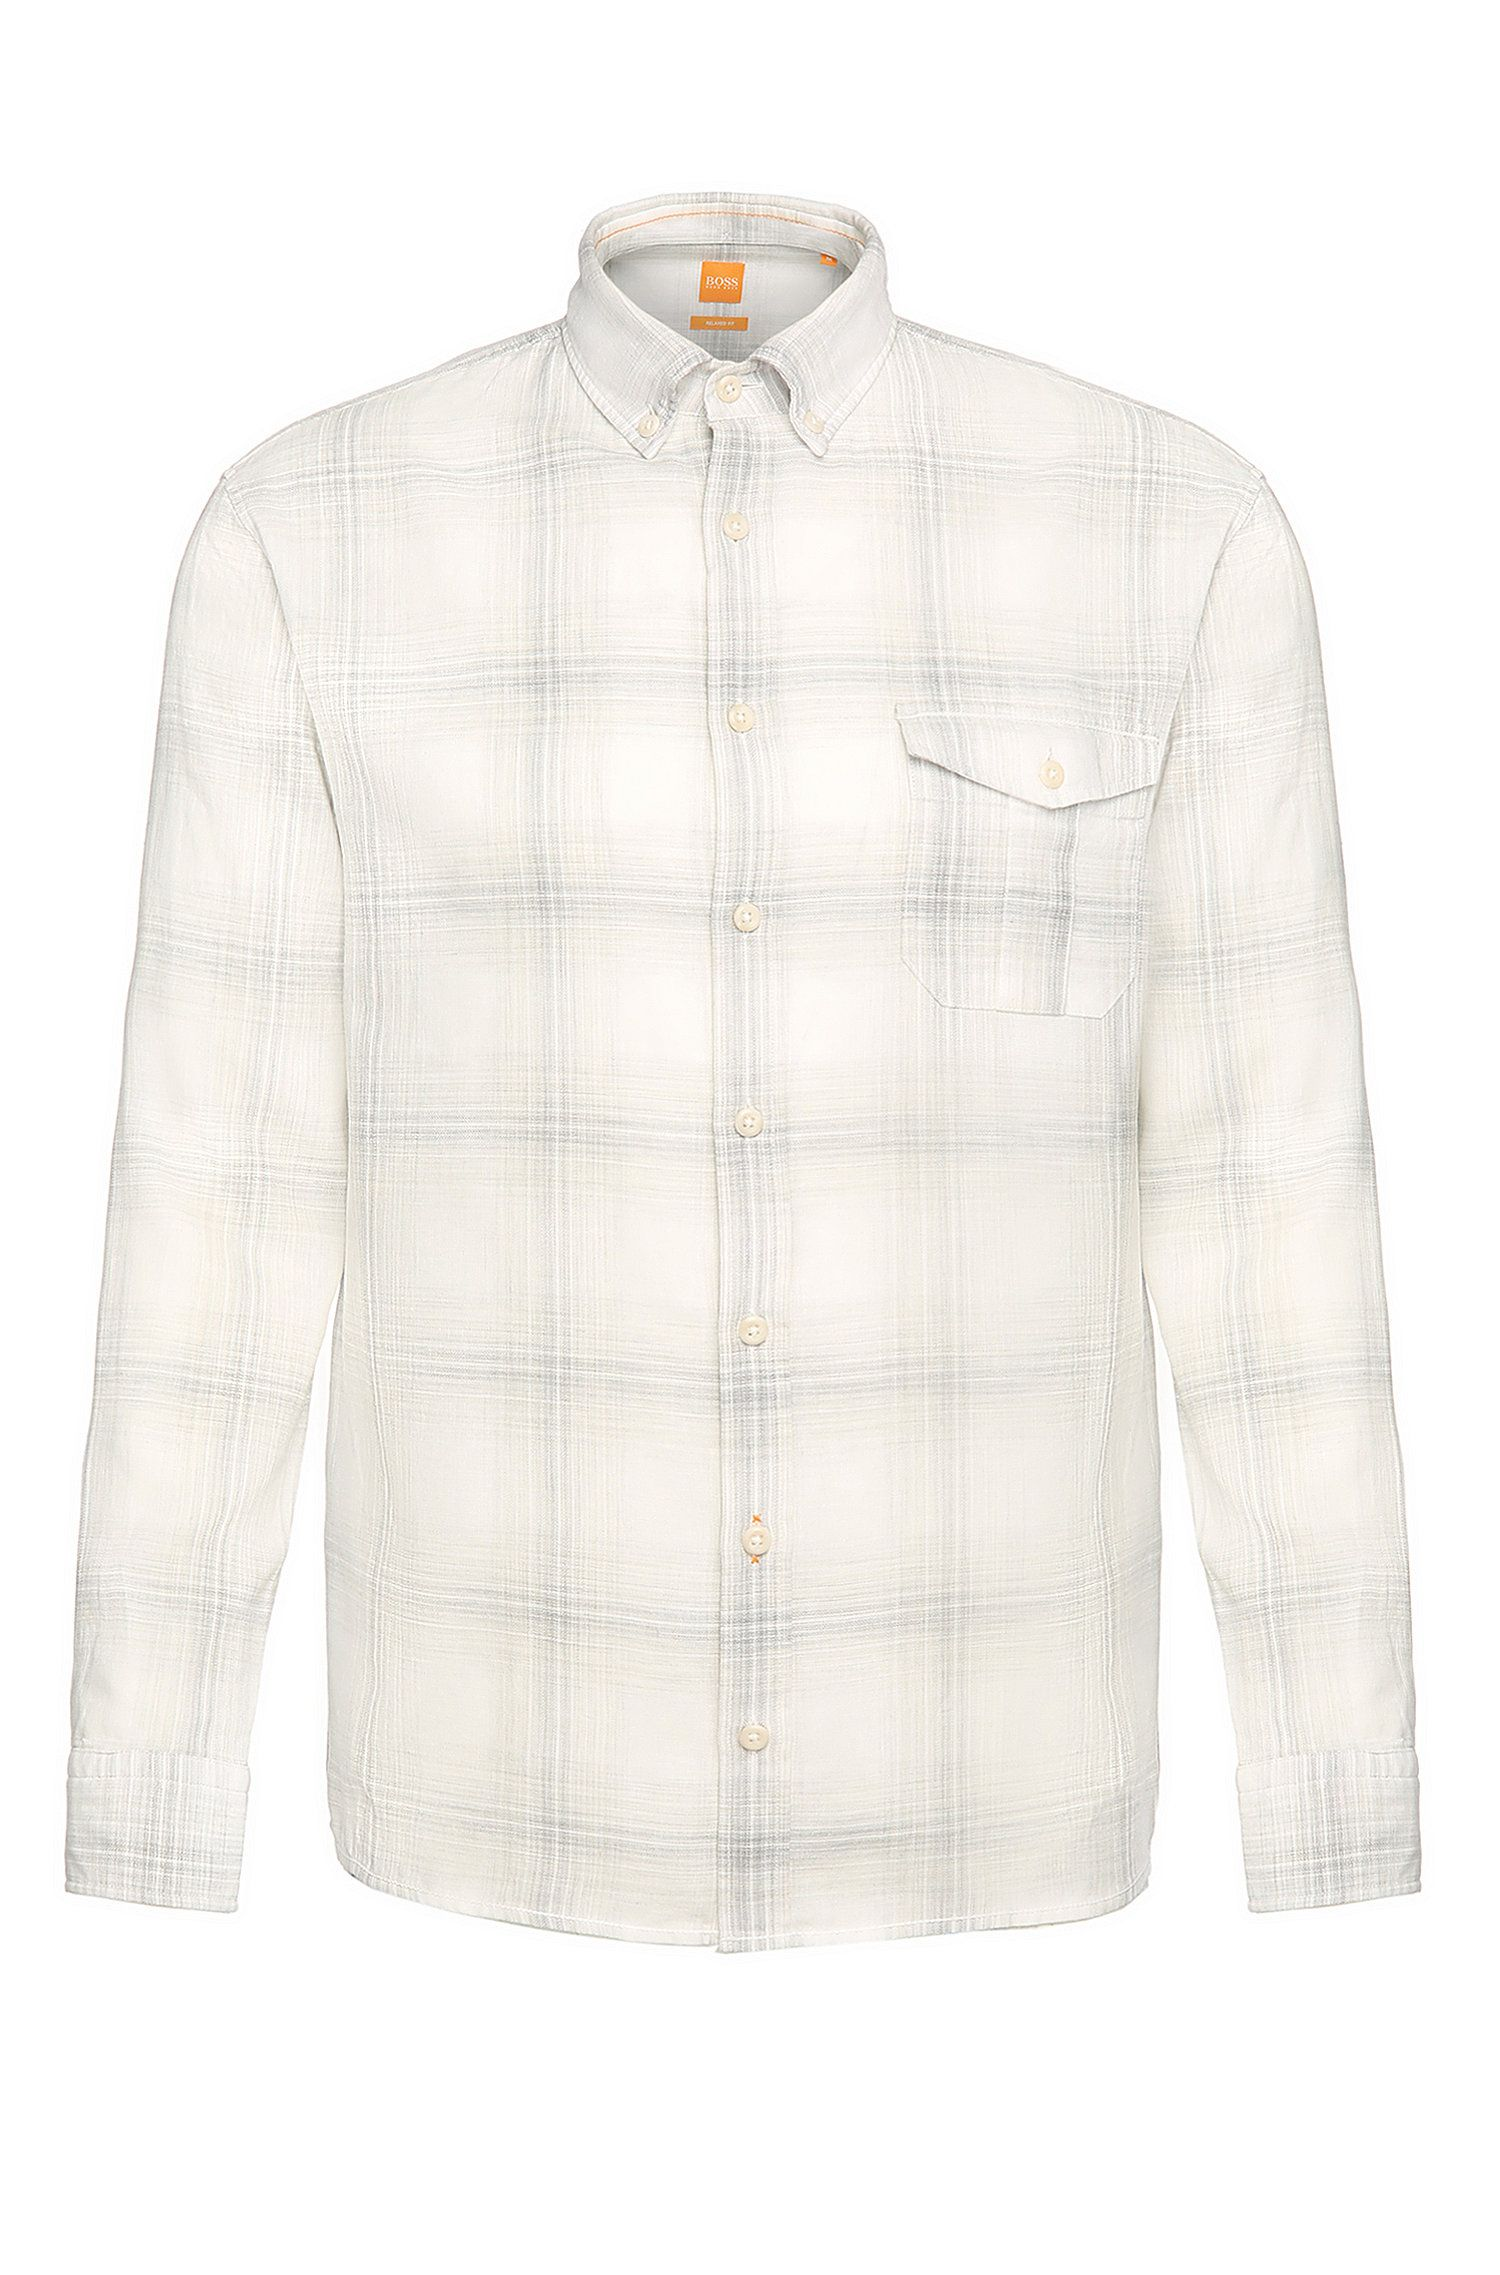 Cotton Linen Plaid Button Down Shirt, Regular Fit | Elabor